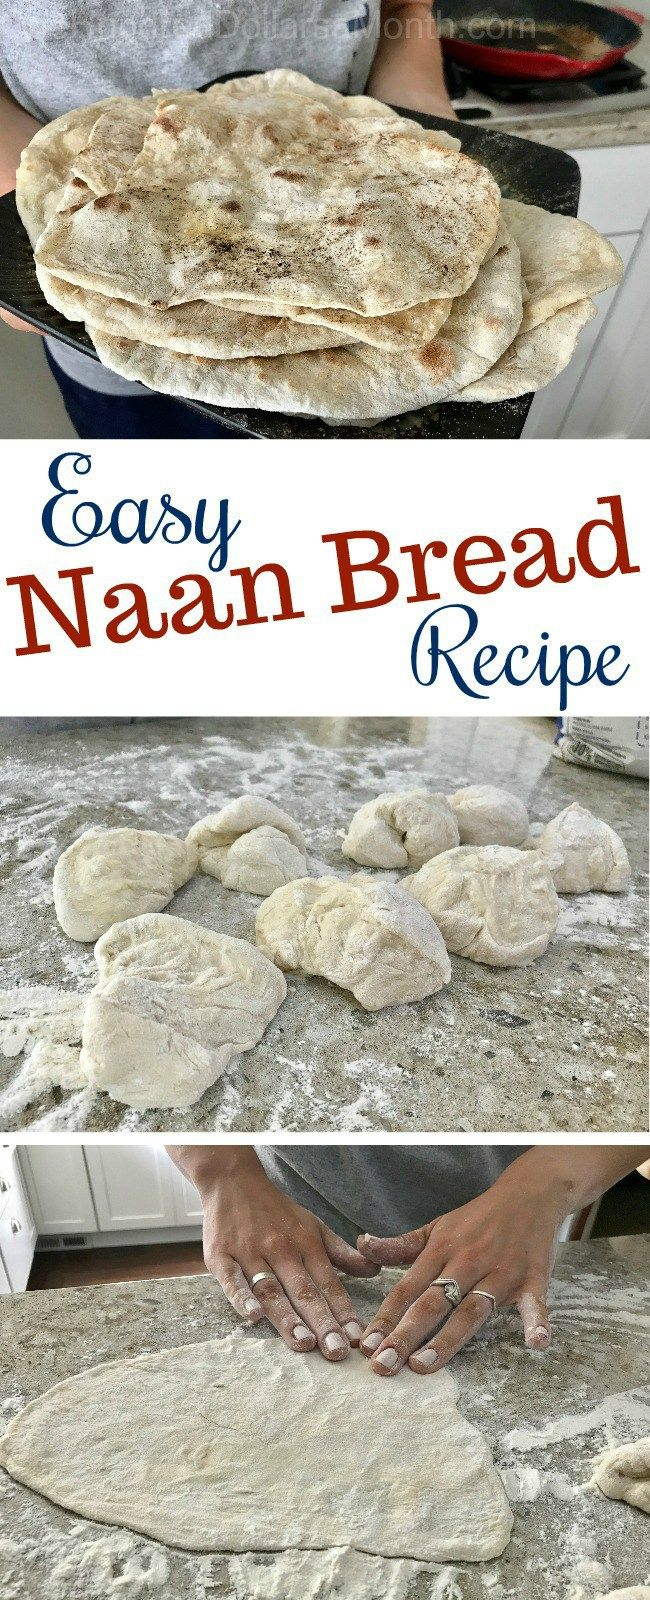 Only have a few ingredients in your cabinet but want to make something delicious? Look no further because I have a recipe for the easiest naan bread ever! This bread is quick to make and can easily be packed for lunches, served alongside curry dishes or topped with something as simple as pesto for a …